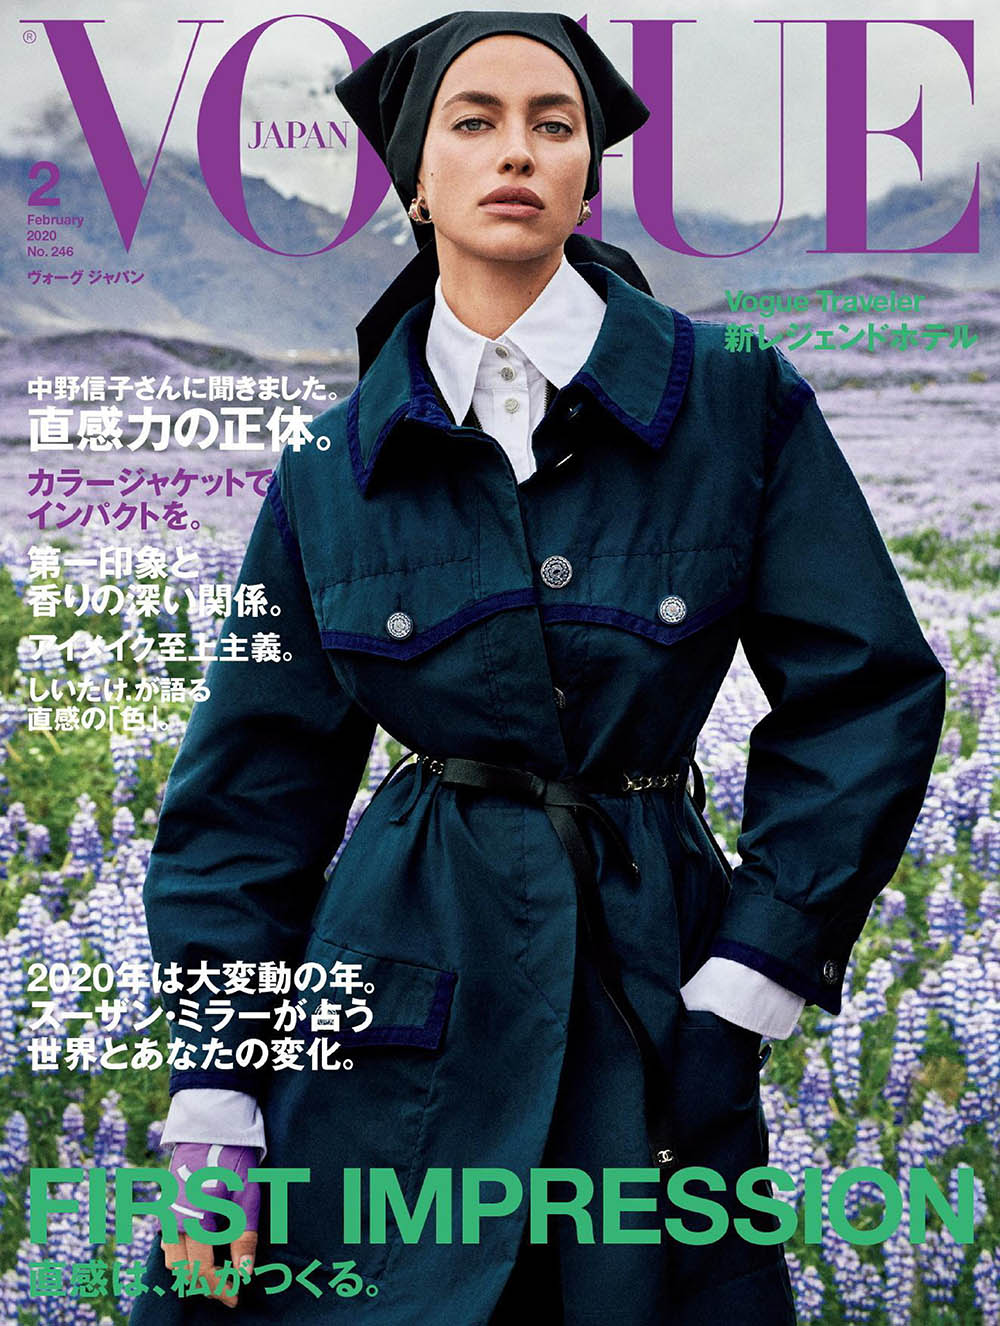 Irina Shayk covers Vogue Japan February 2020 by Giampaolo Sgura